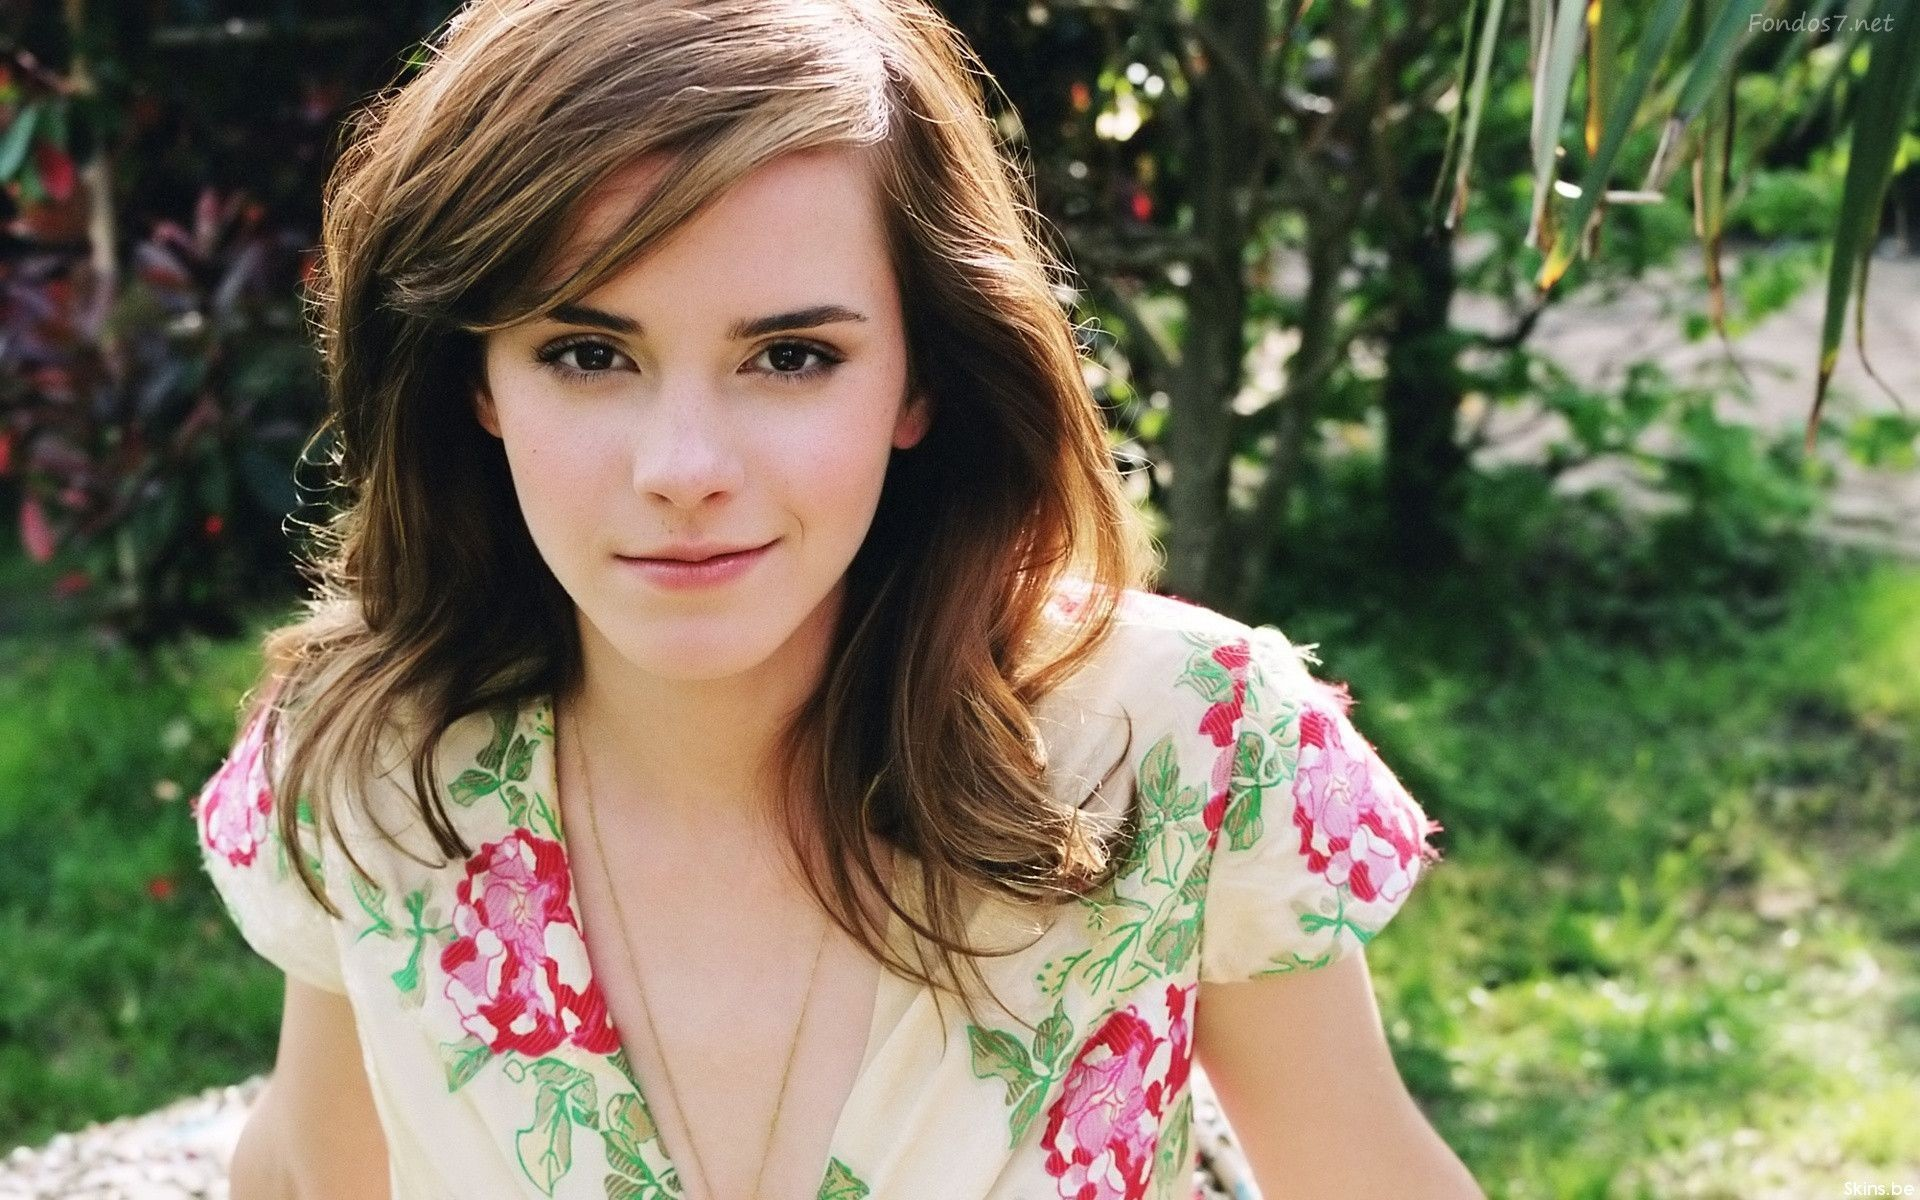 … Wallpapers High Resolution and Quality sexiest photos of Emma Watson's  body …